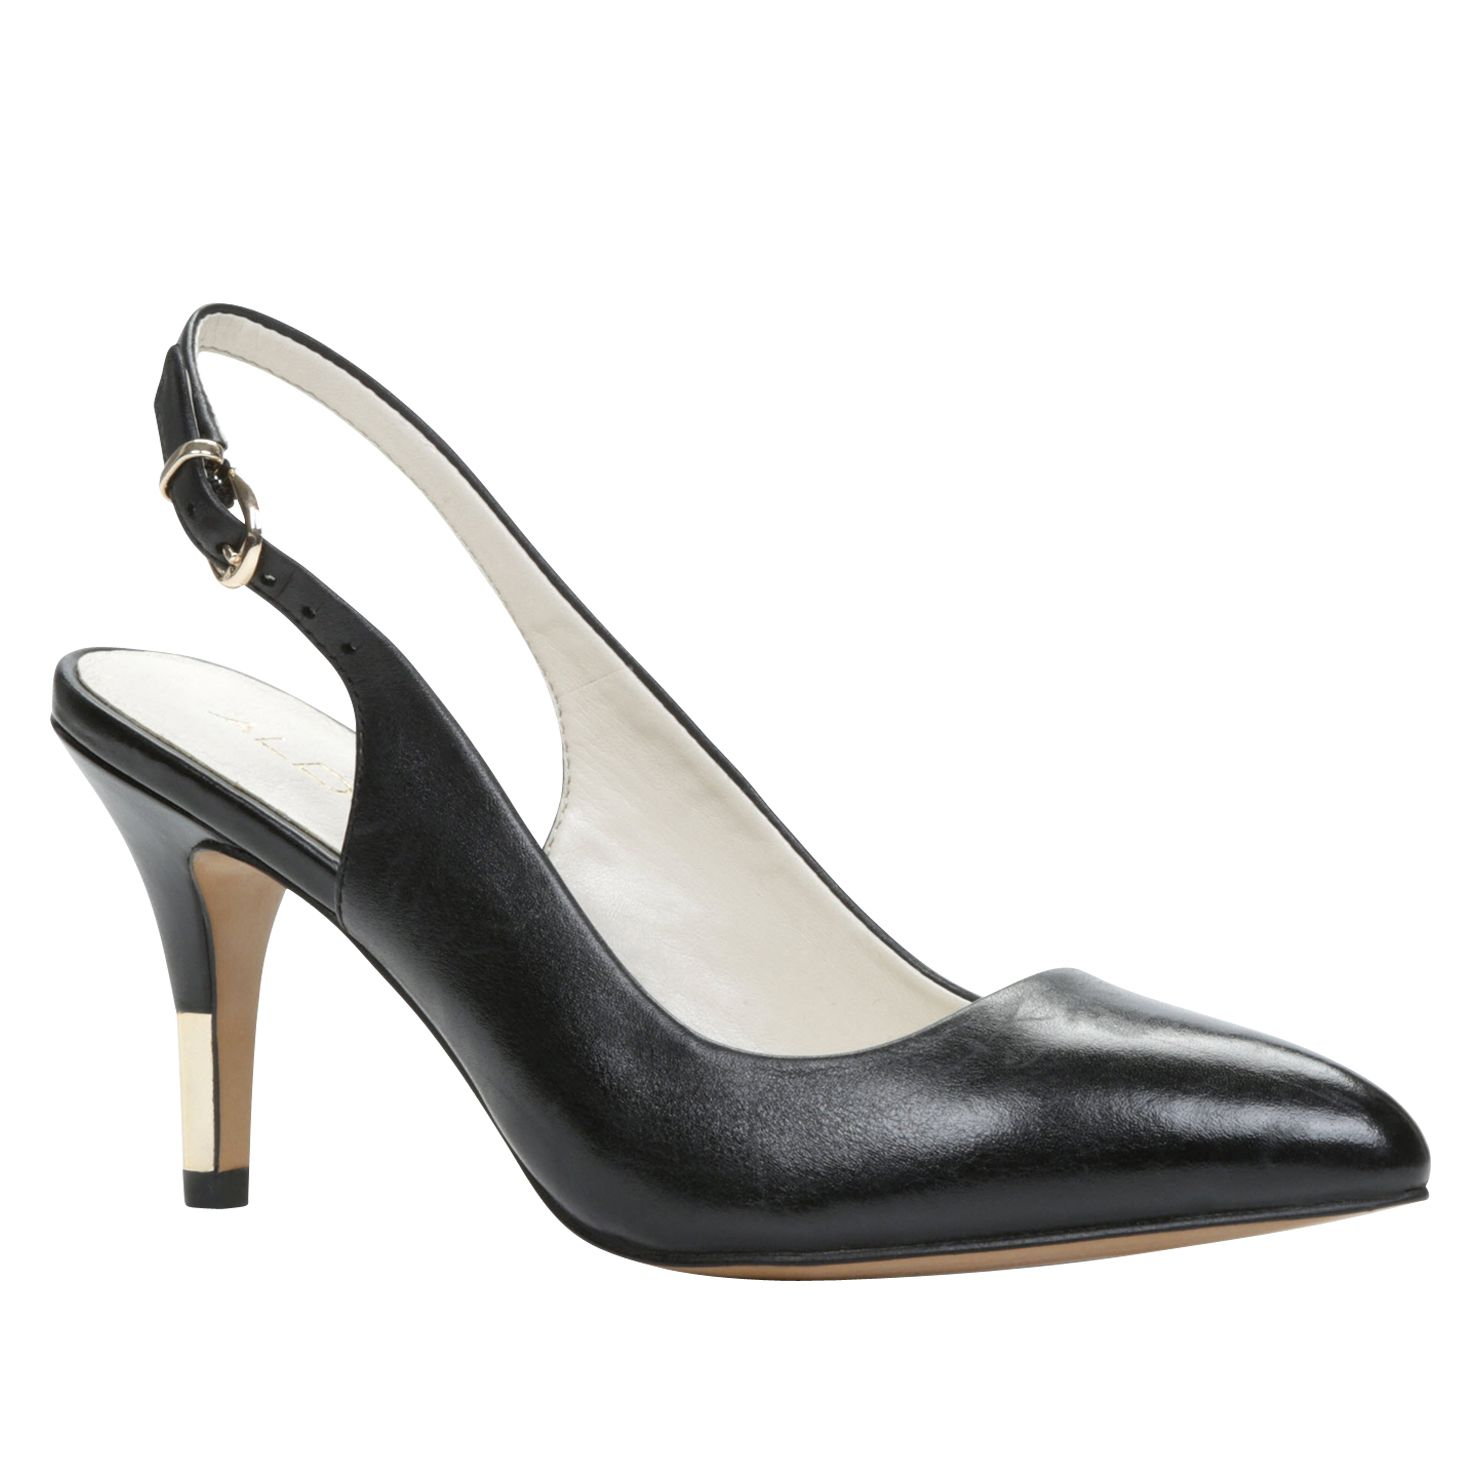 Nydiwien pointed toe court shoes